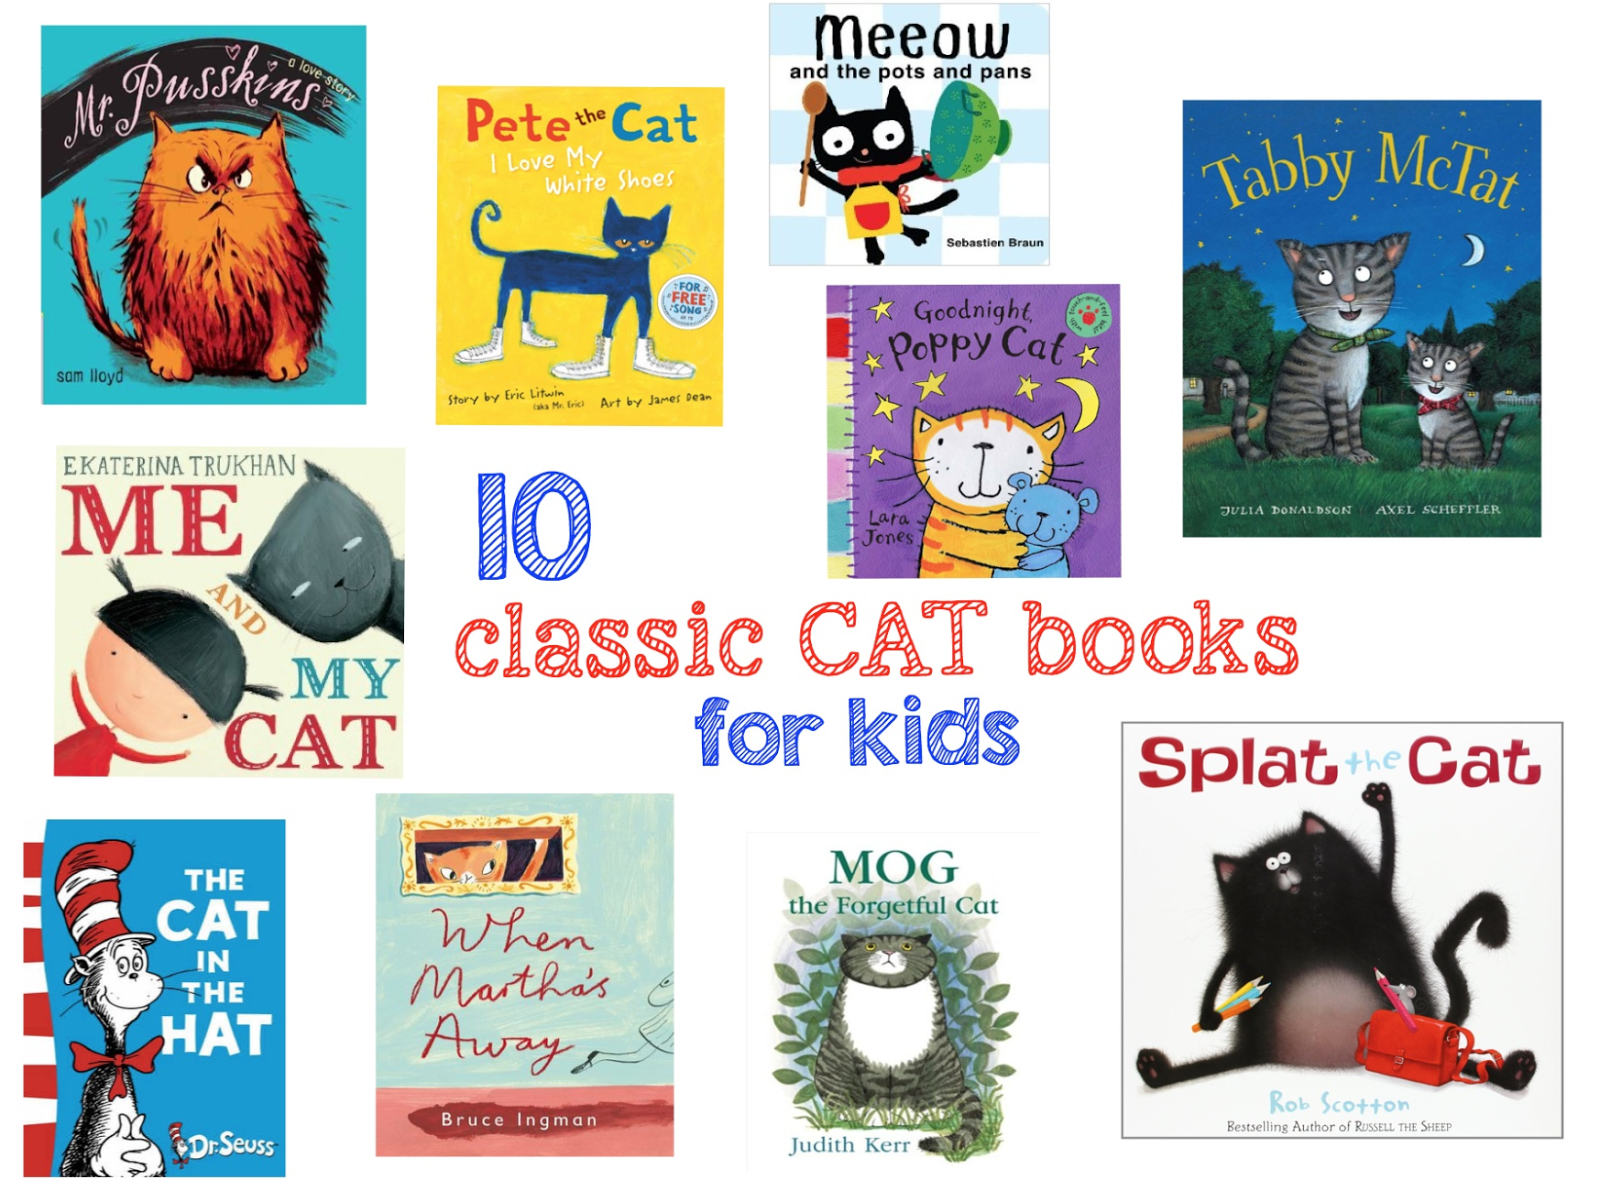 mamasVIB | V. I. BOOKCLUB: We ❤ Cats - and our 10 purr-fect cat books for bedtime